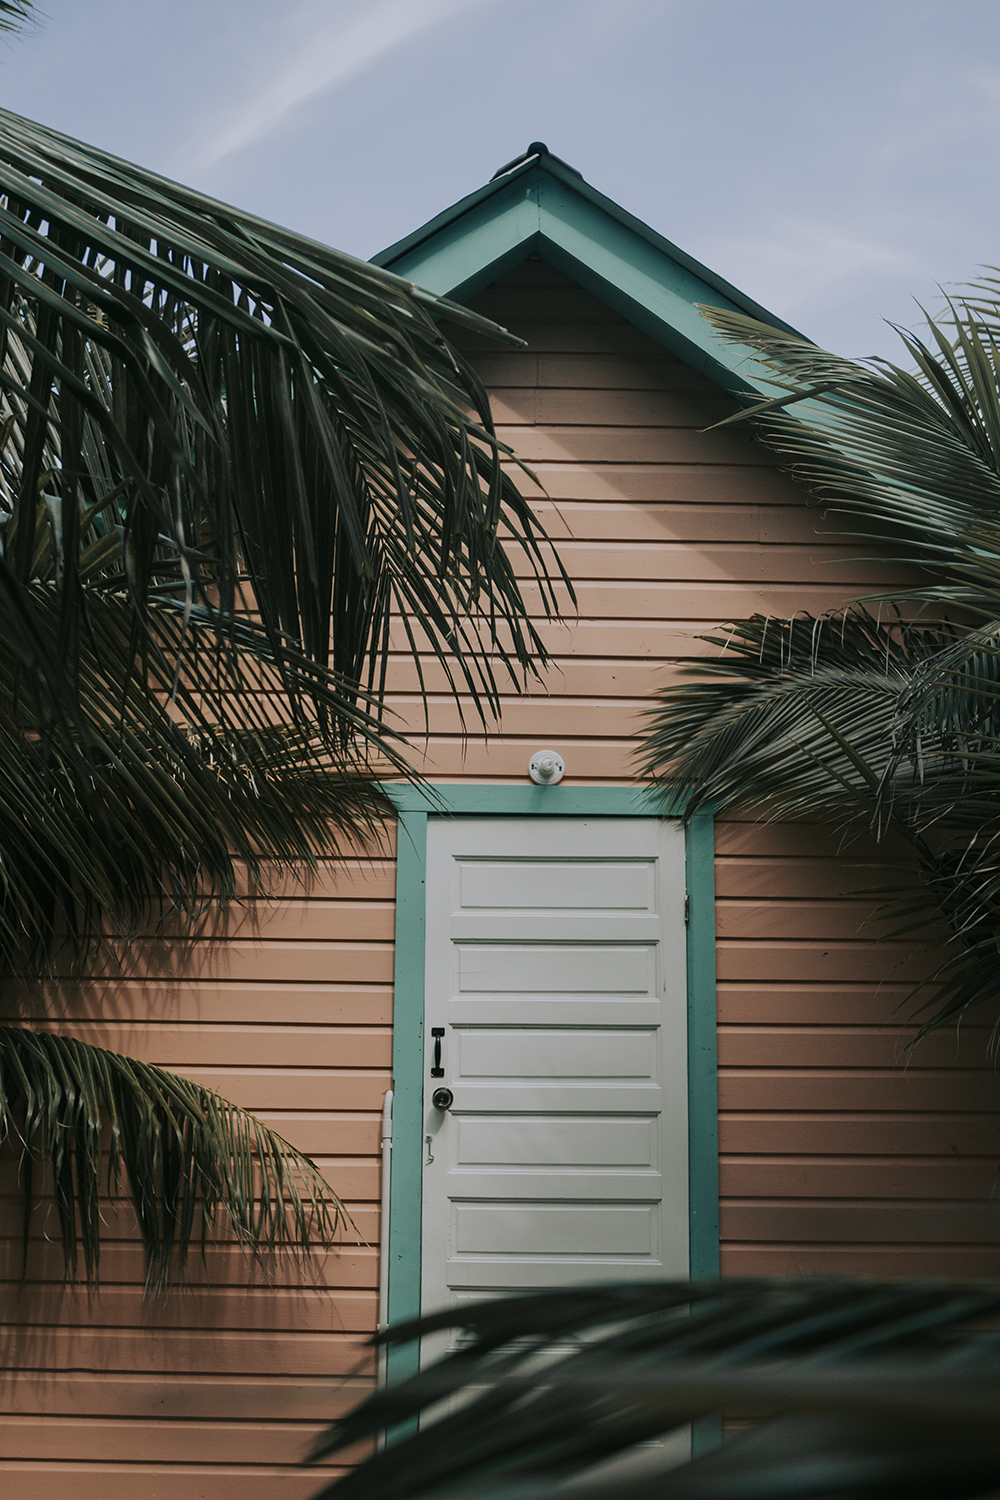 island life belize caye caulker travel photography hannah bergman